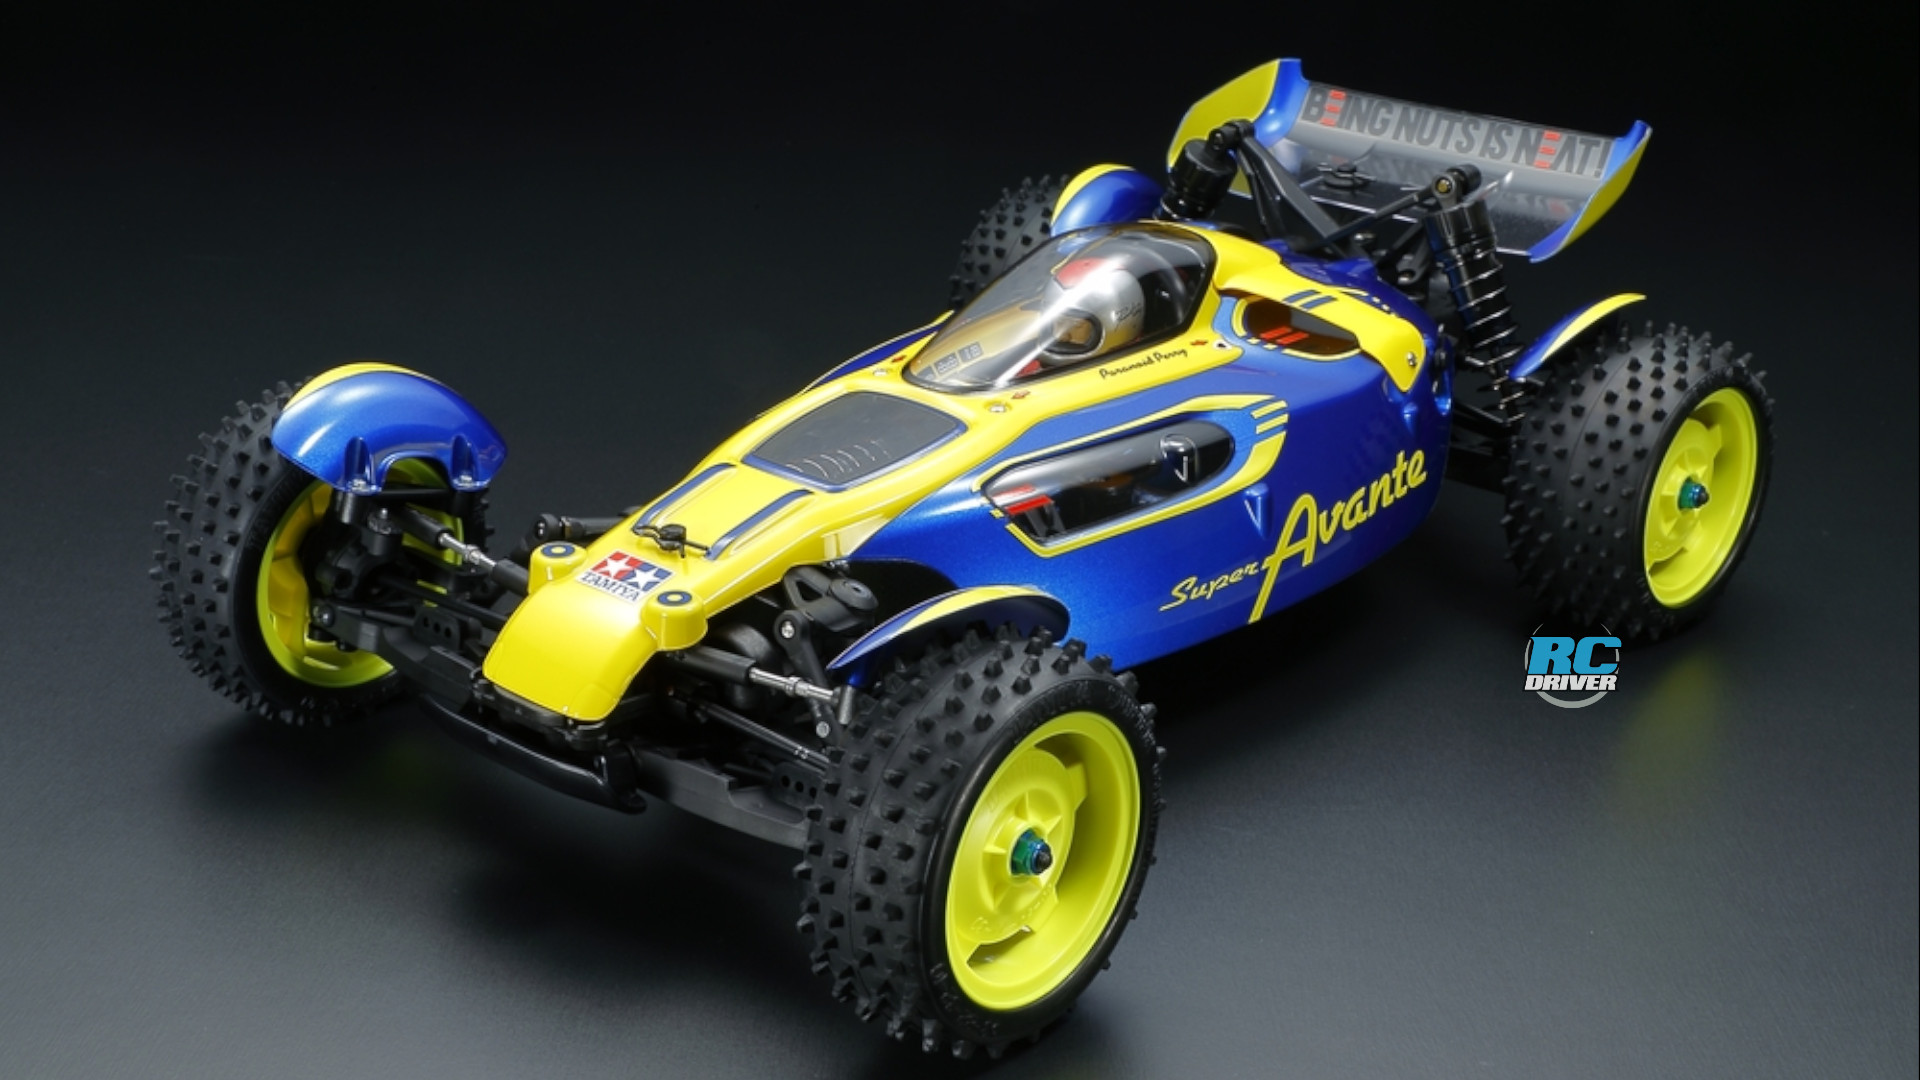 Tamiya Super Avante On The All-New TD4 Chassis